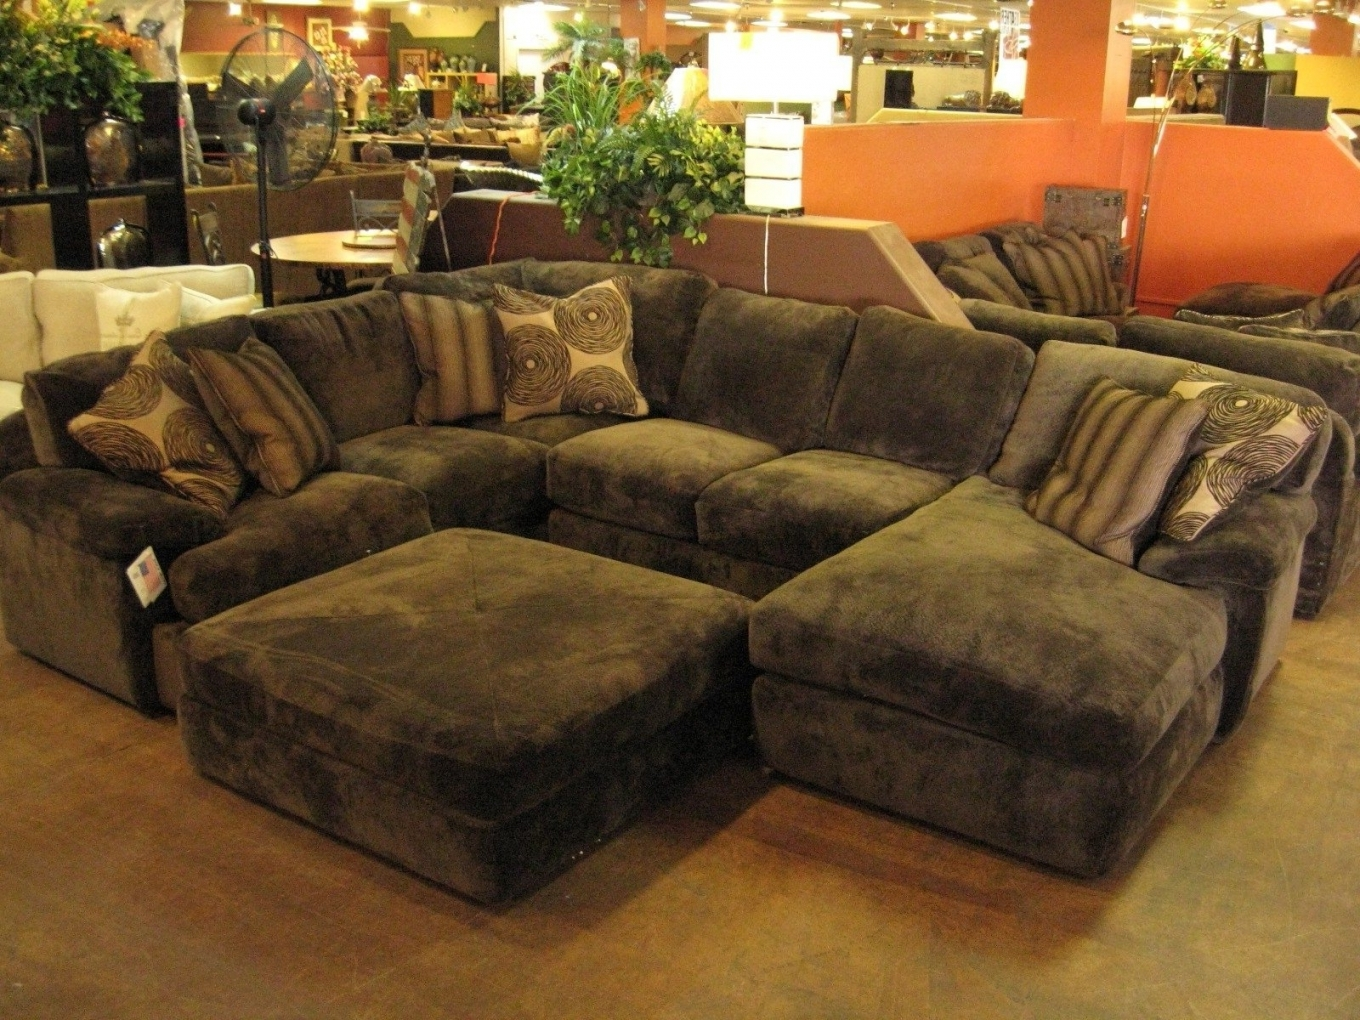 Best Comfy Sectional Sofas 18 For Your Sofas And Couches Ideas Regarding Latest Las Vegas Sectional Sofas (View 1 of 15)